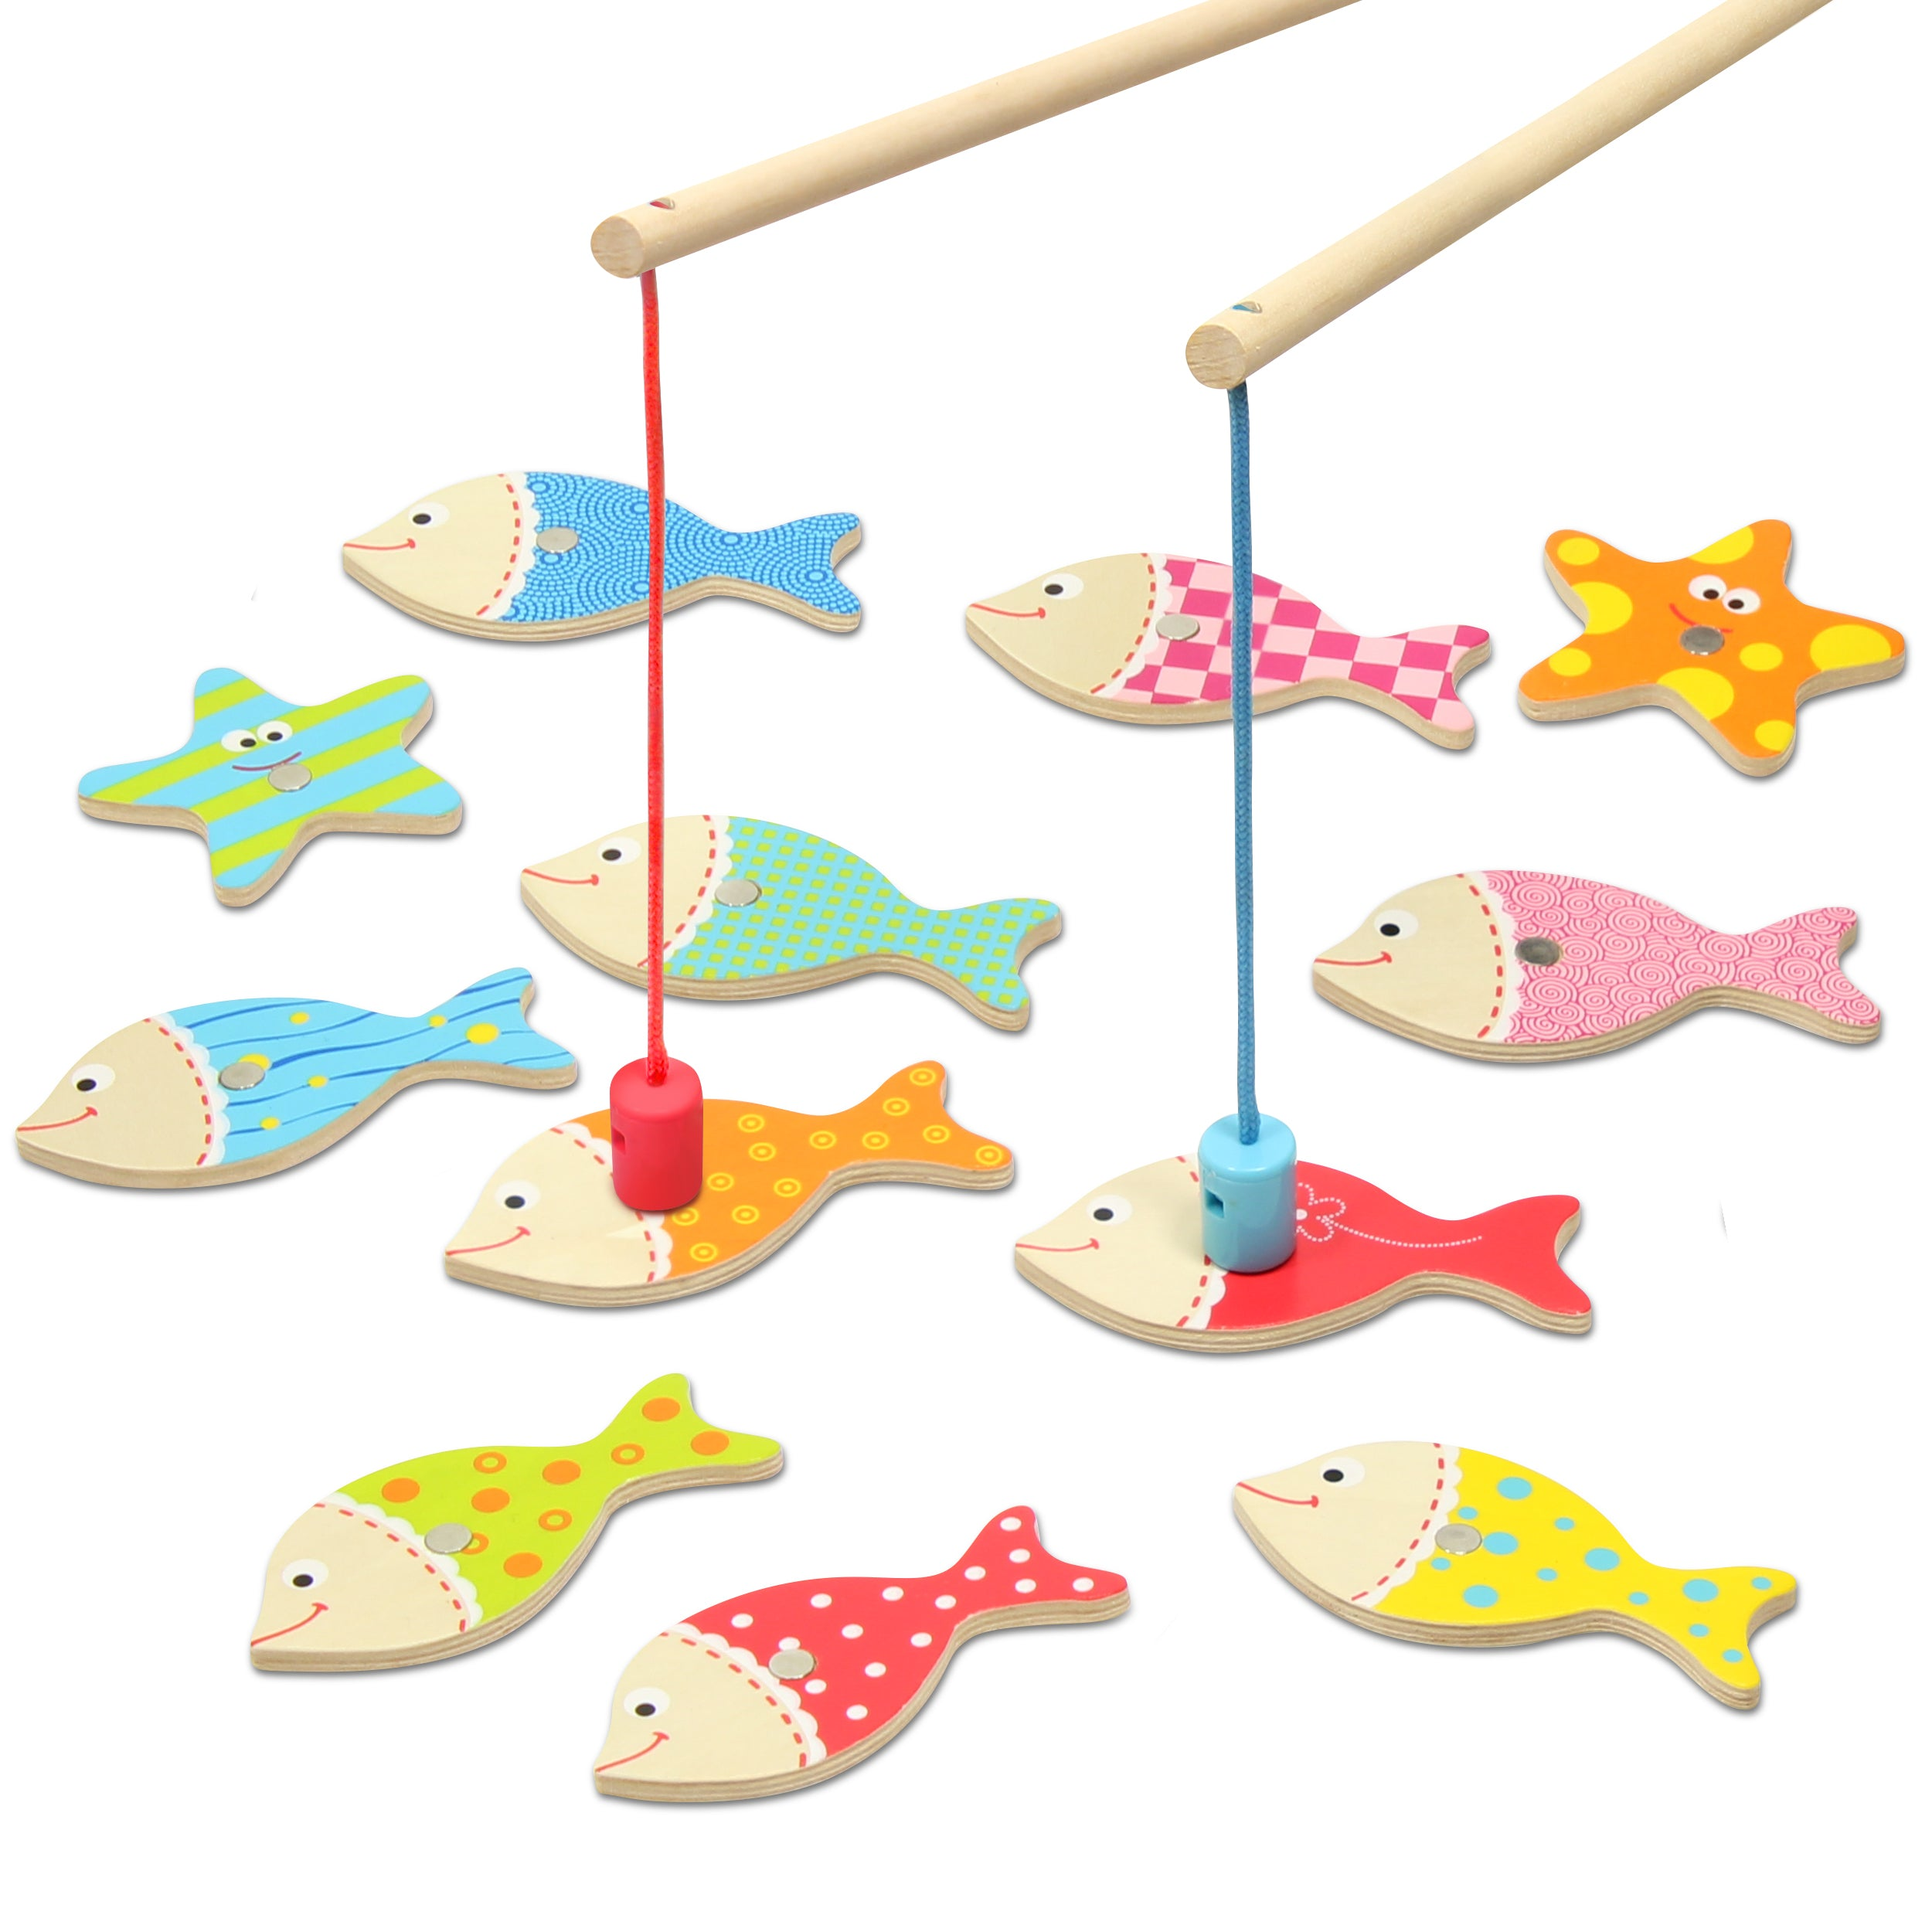 Magnetic Wooden Fishing Game - Kidzlane